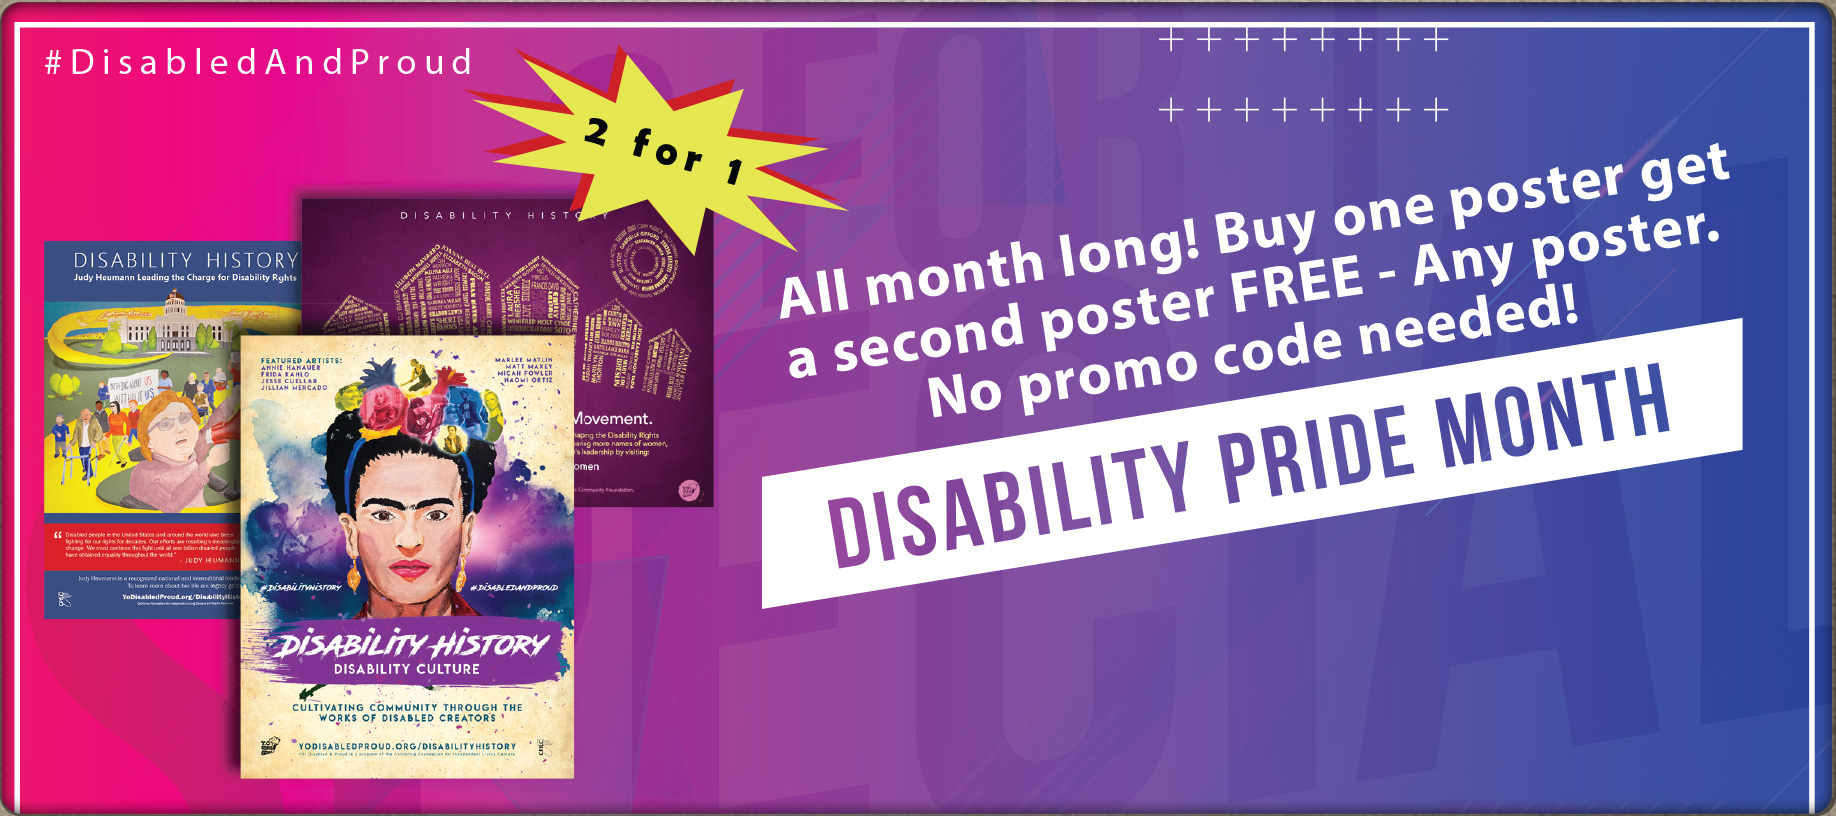 Promotional banner for the YO! Store. Reads: All month long! Buy one poster get a second poster FREE - Any poster. No promo code needed! Disability Pride Month. #DisabledAndProud.